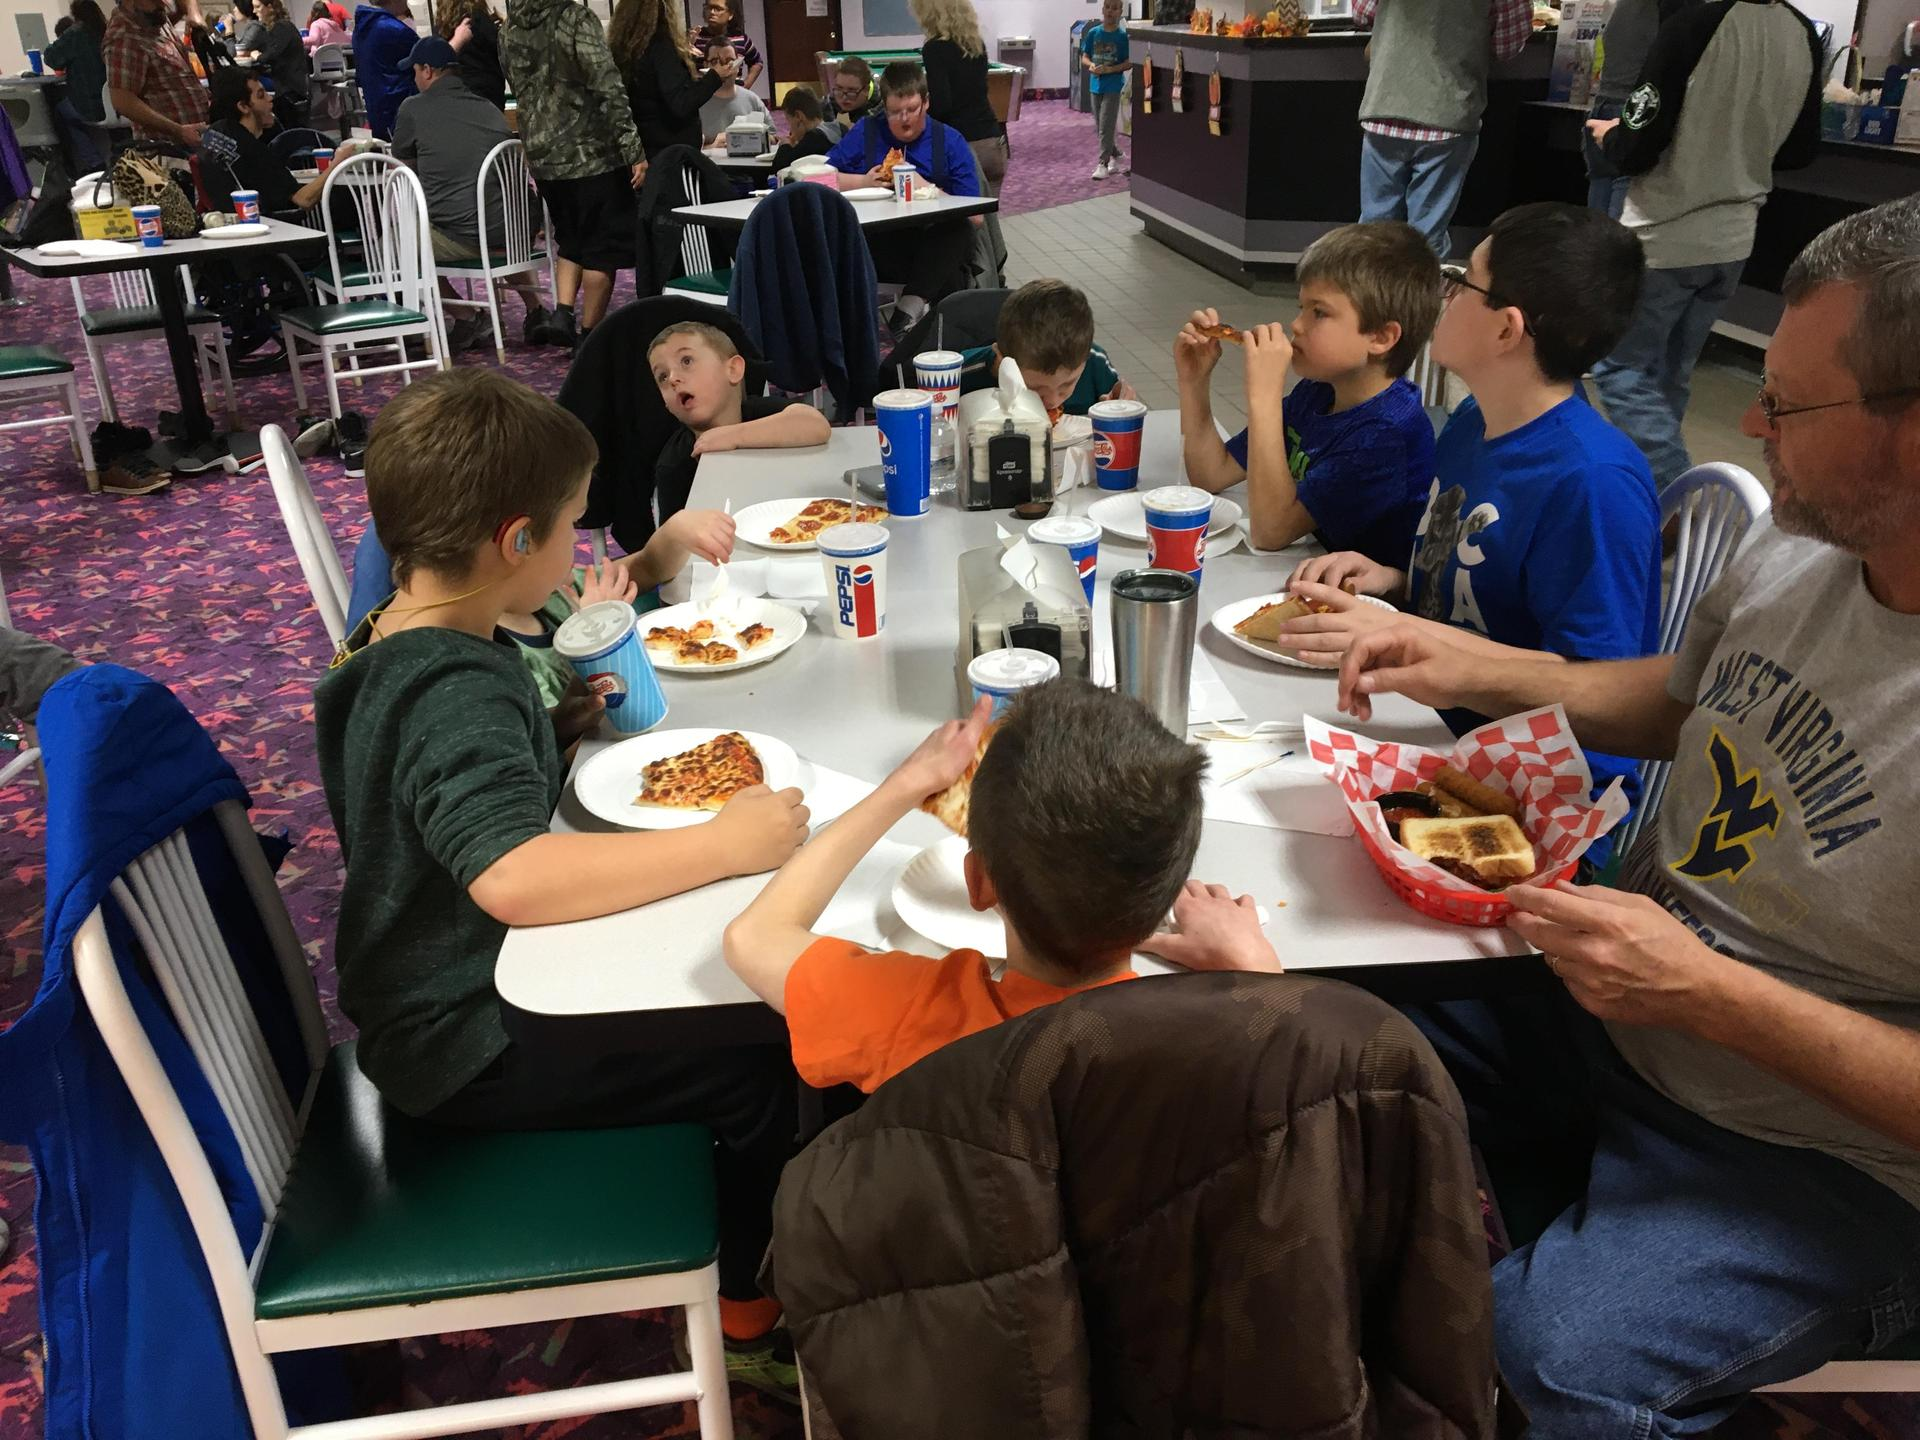 Students sitting around a table for dinner at the Bowling Alley